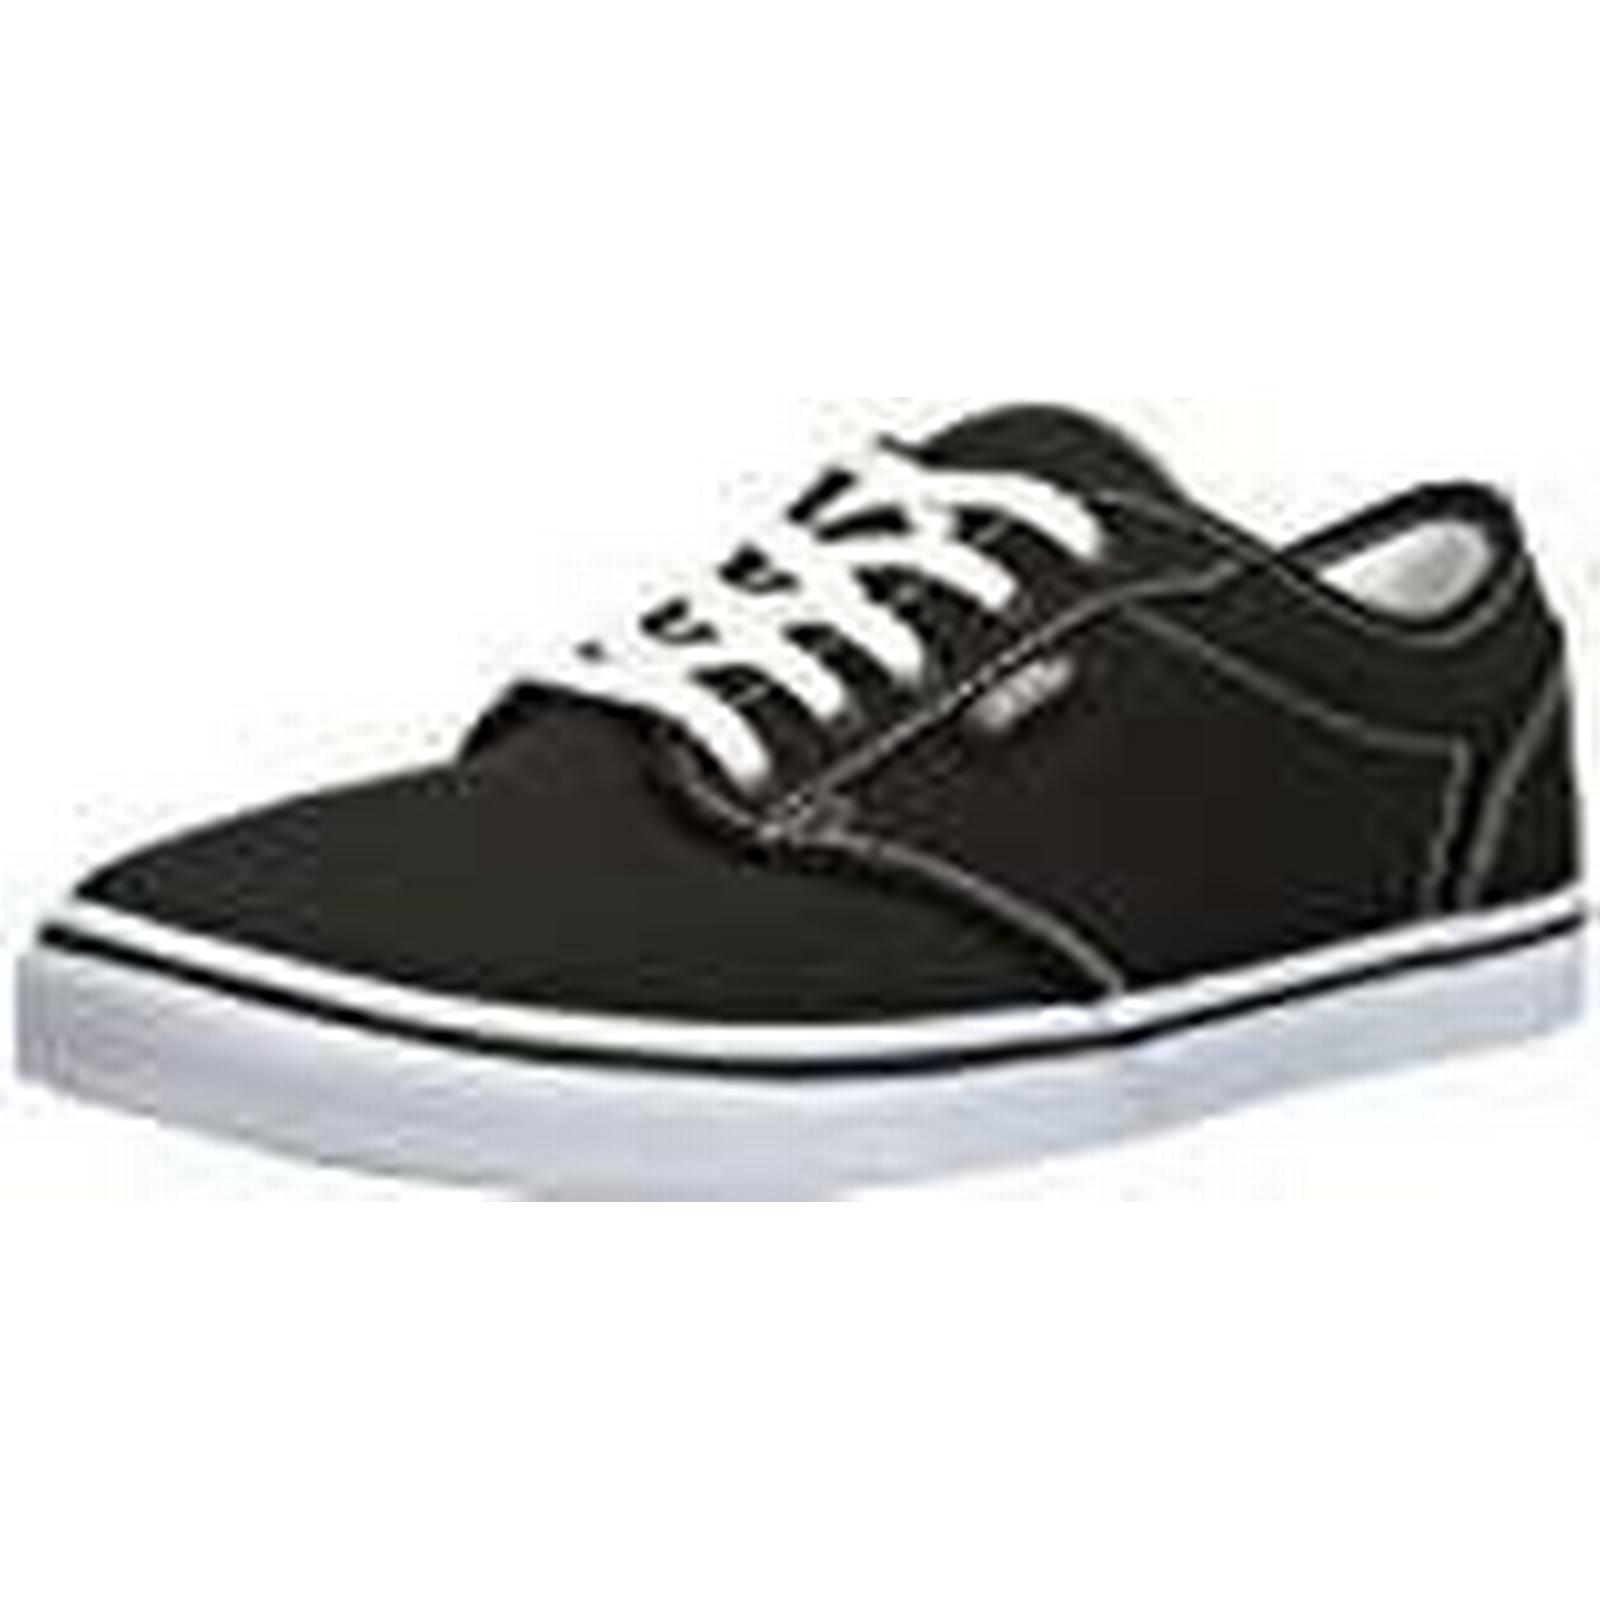 Vans Atwood Low Valcanised Skate, White, Women's Low-Top Trainers, Black/True White, Skate, 7 UK / 40.5 EU b727a0